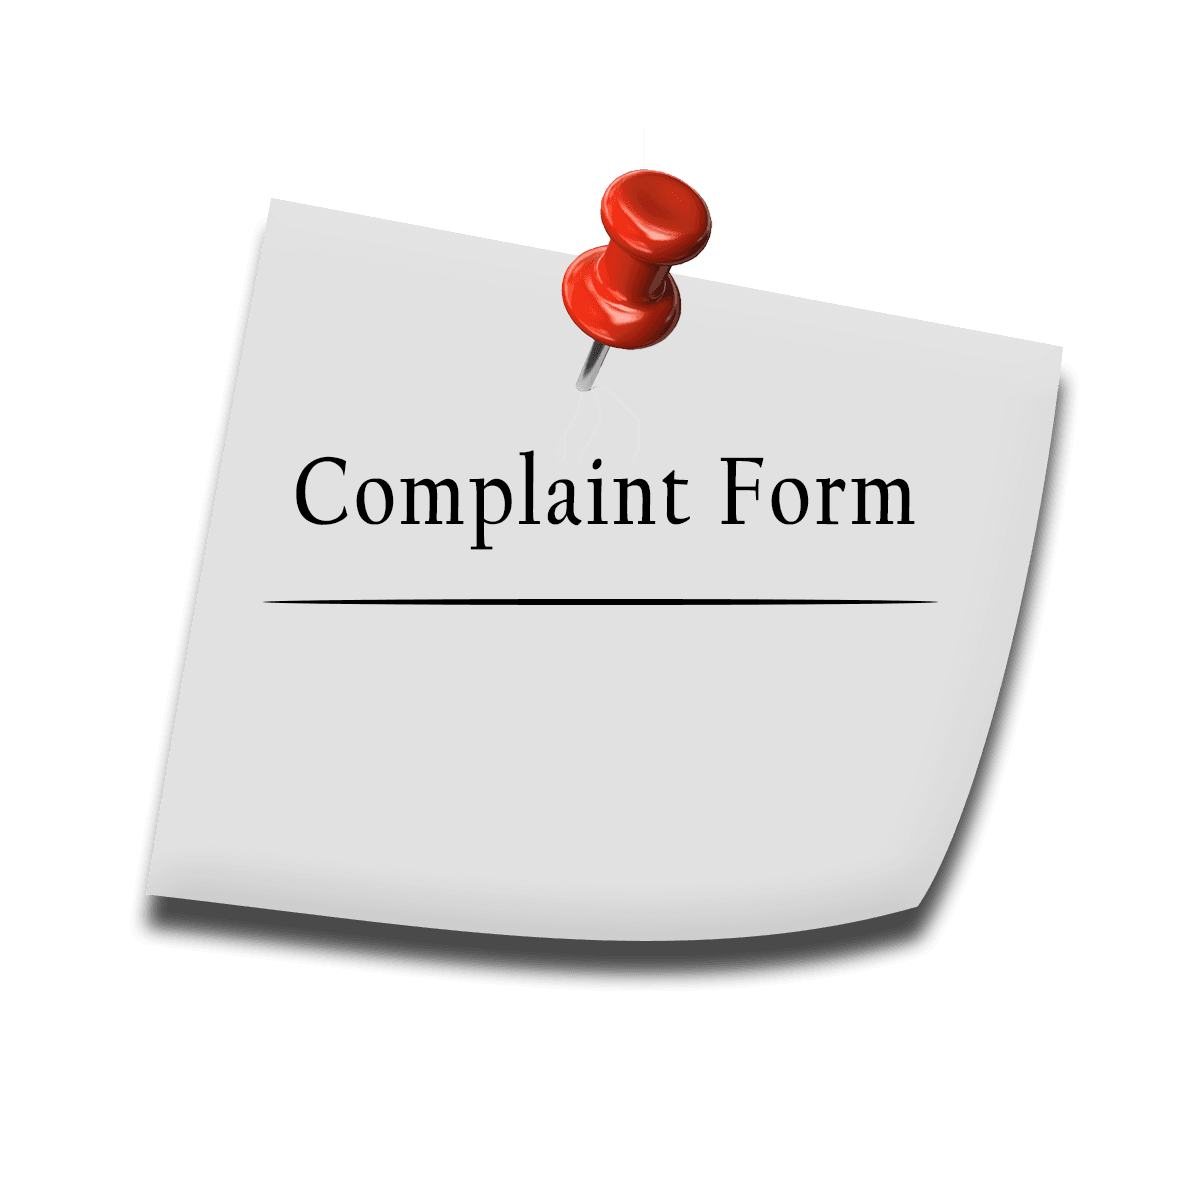 COMPLAINT FORM GRAPHIC  for web